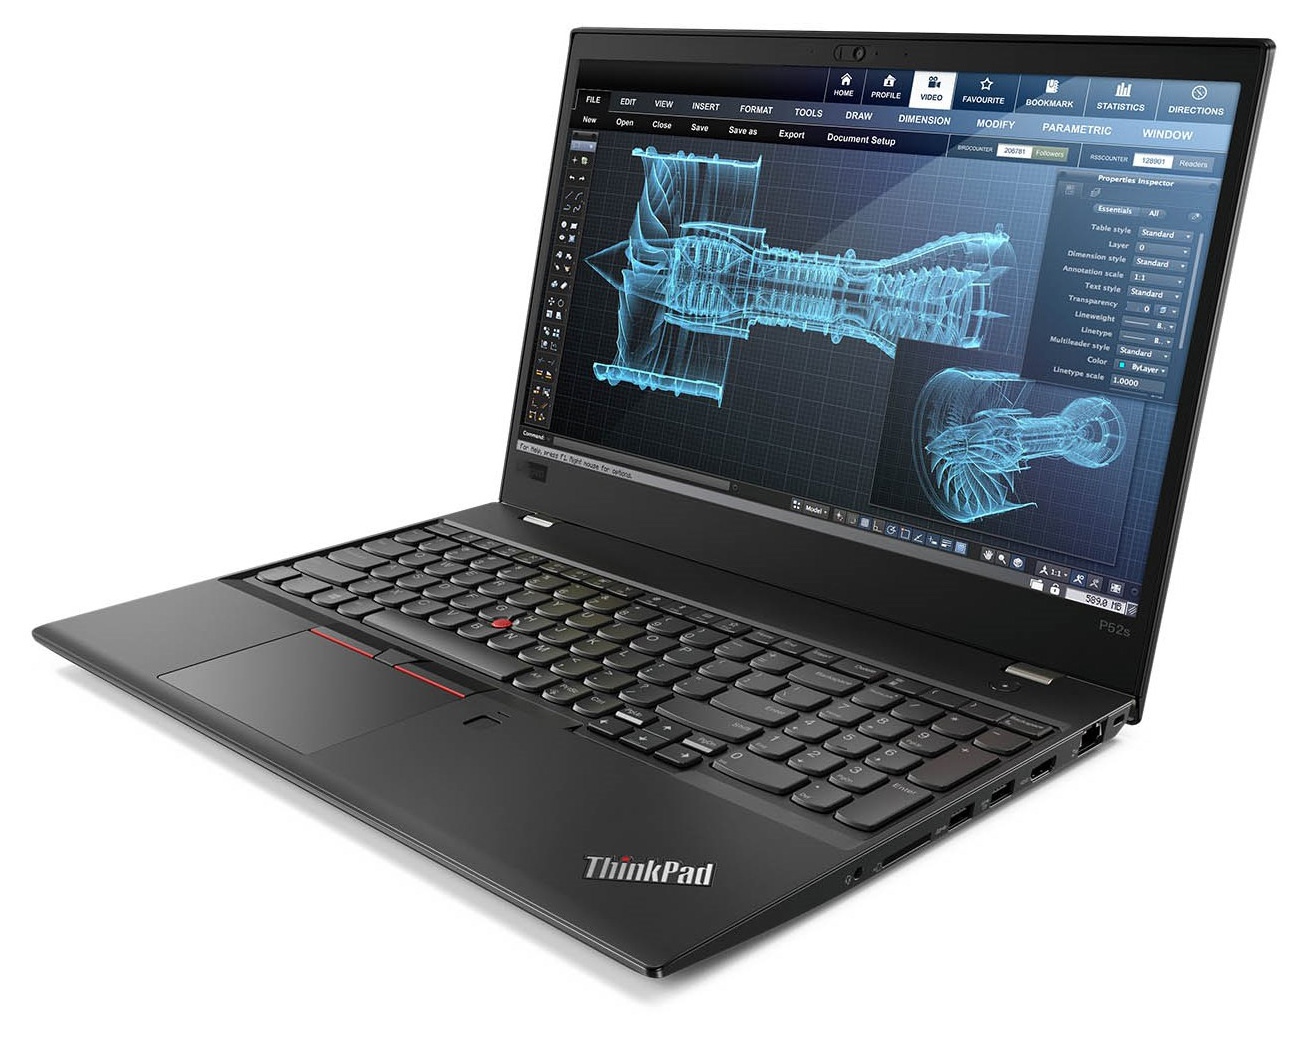 Review the warranty terms for options and accessories purchased from Lenovo.